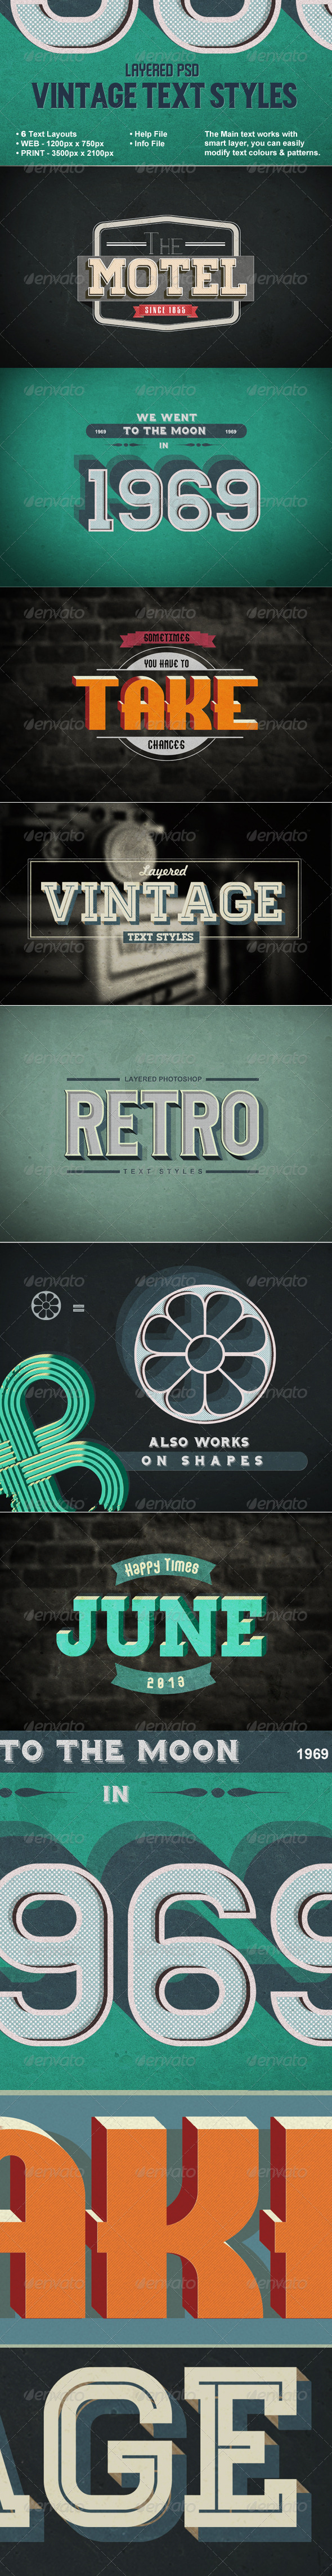 GraphicRiver Vintage Text Styles 5650763